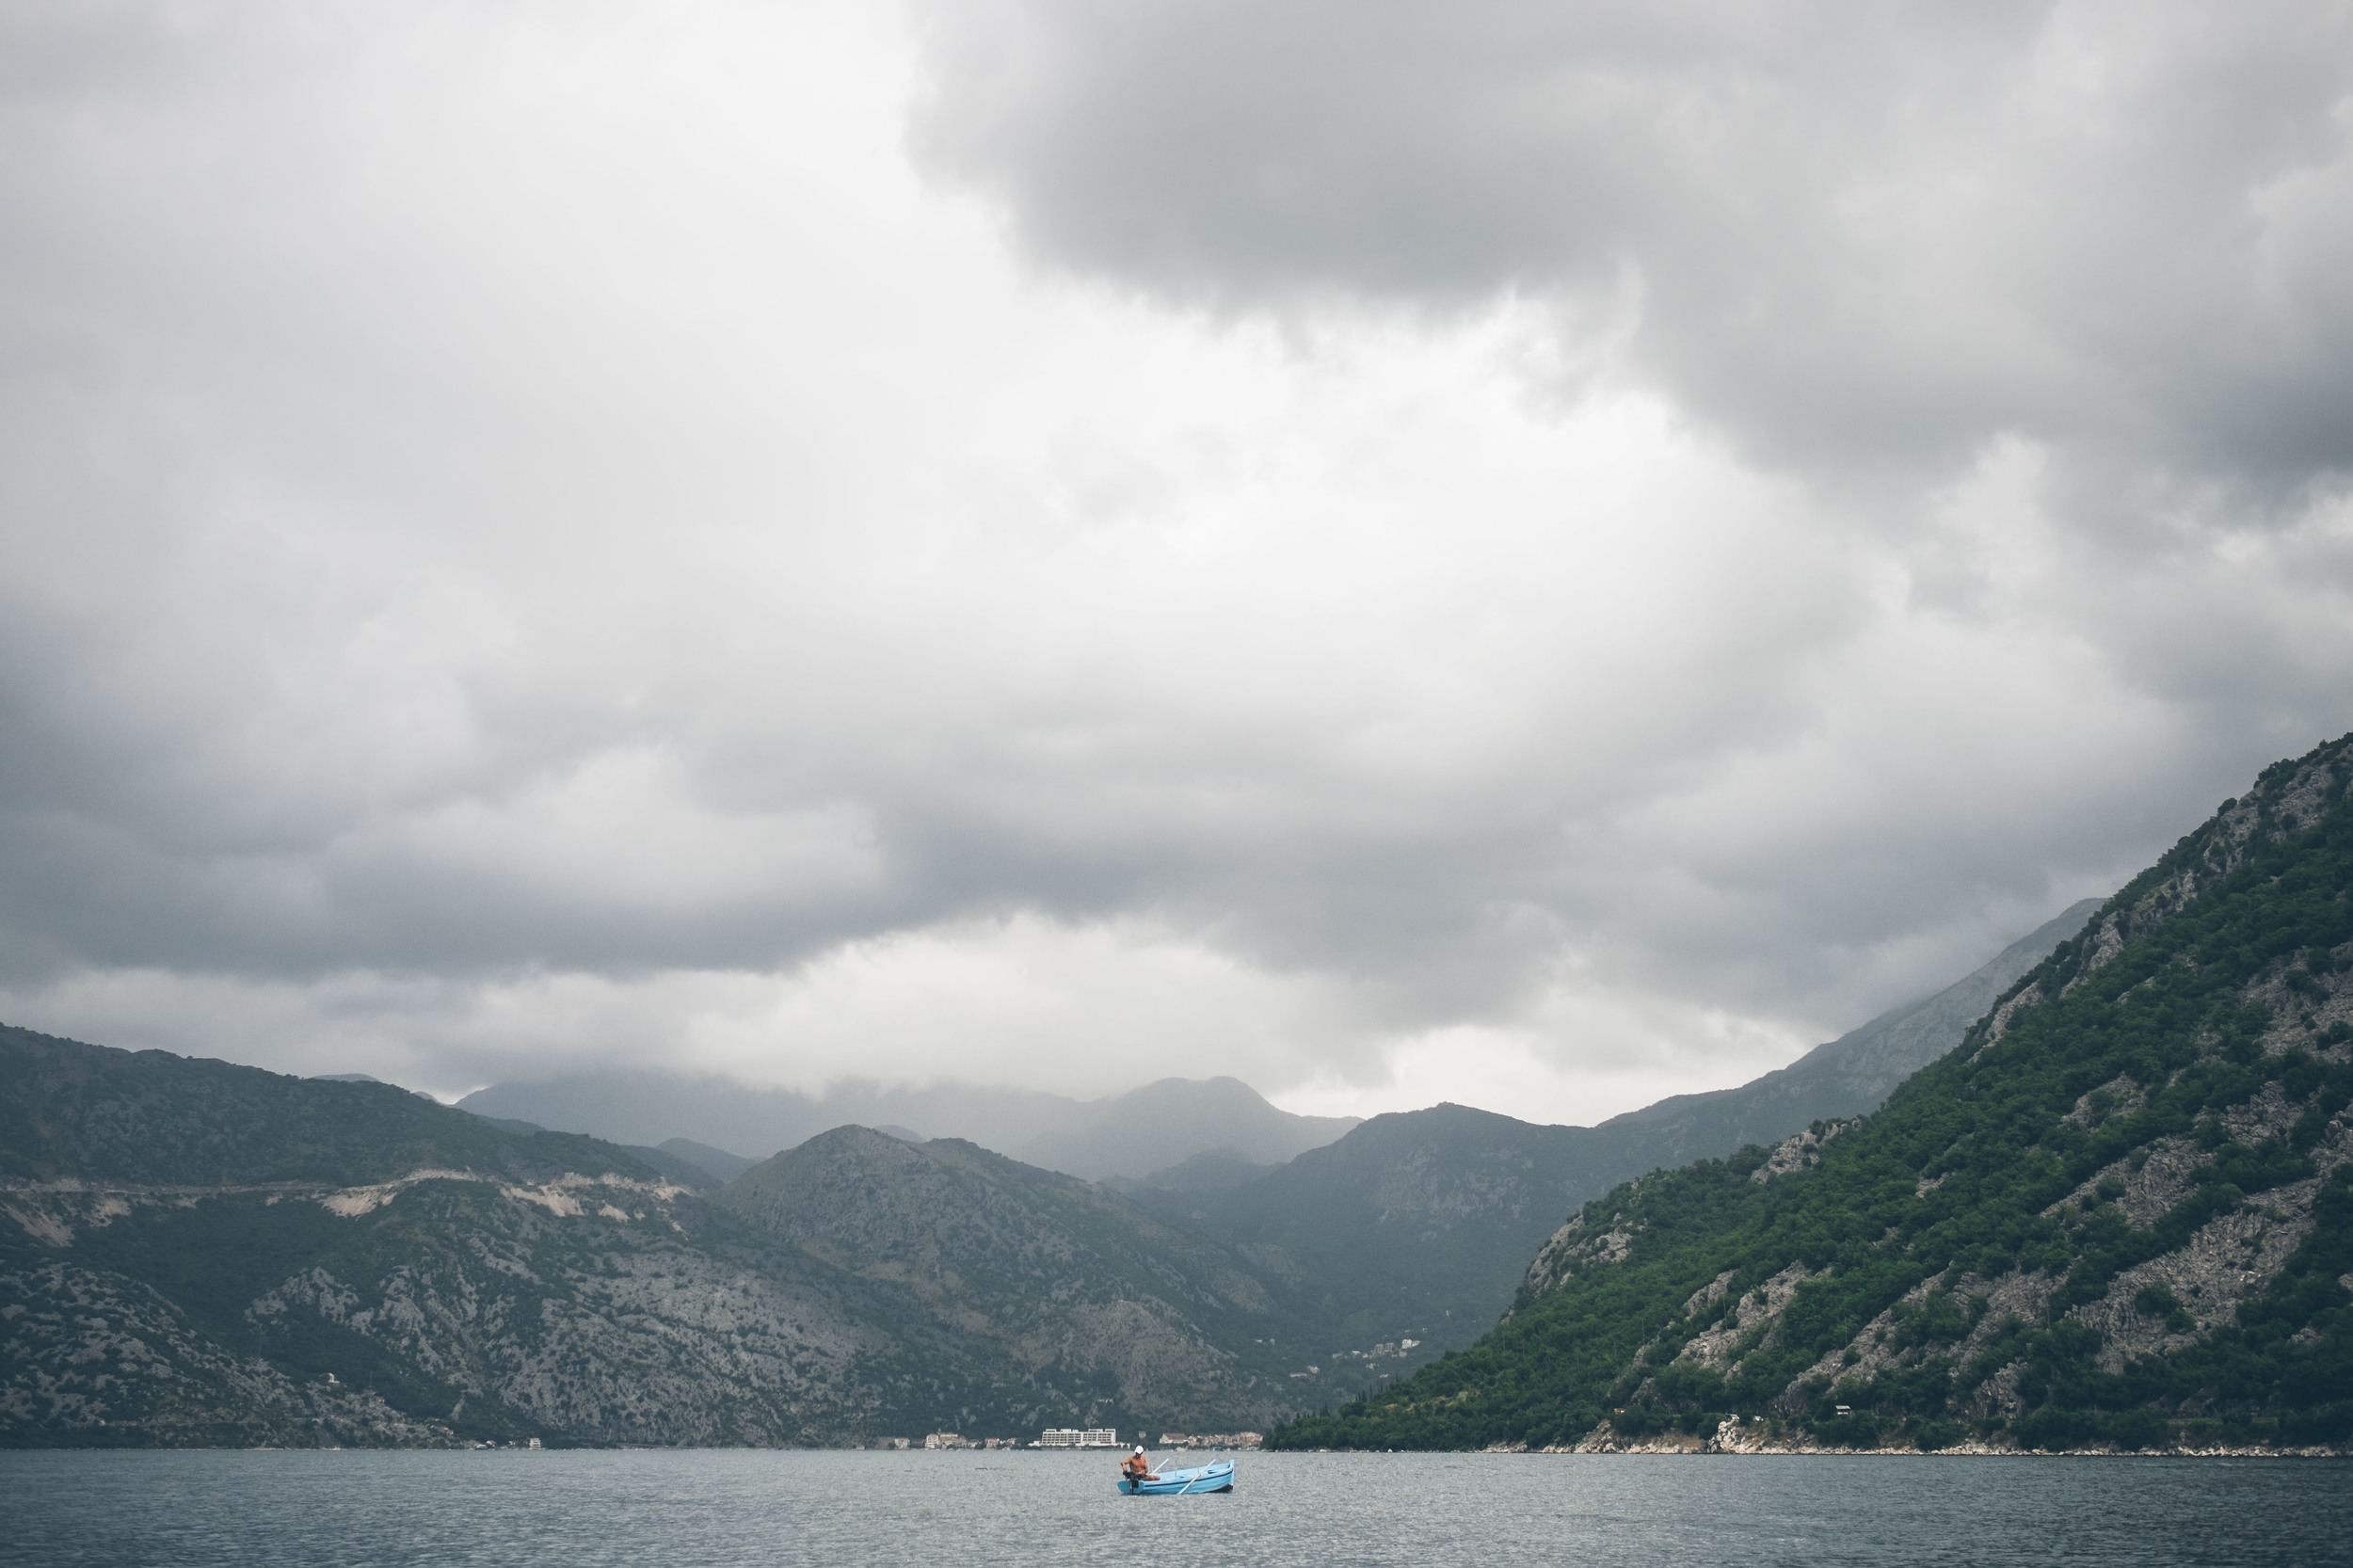 Solitude: Bay of Kotor